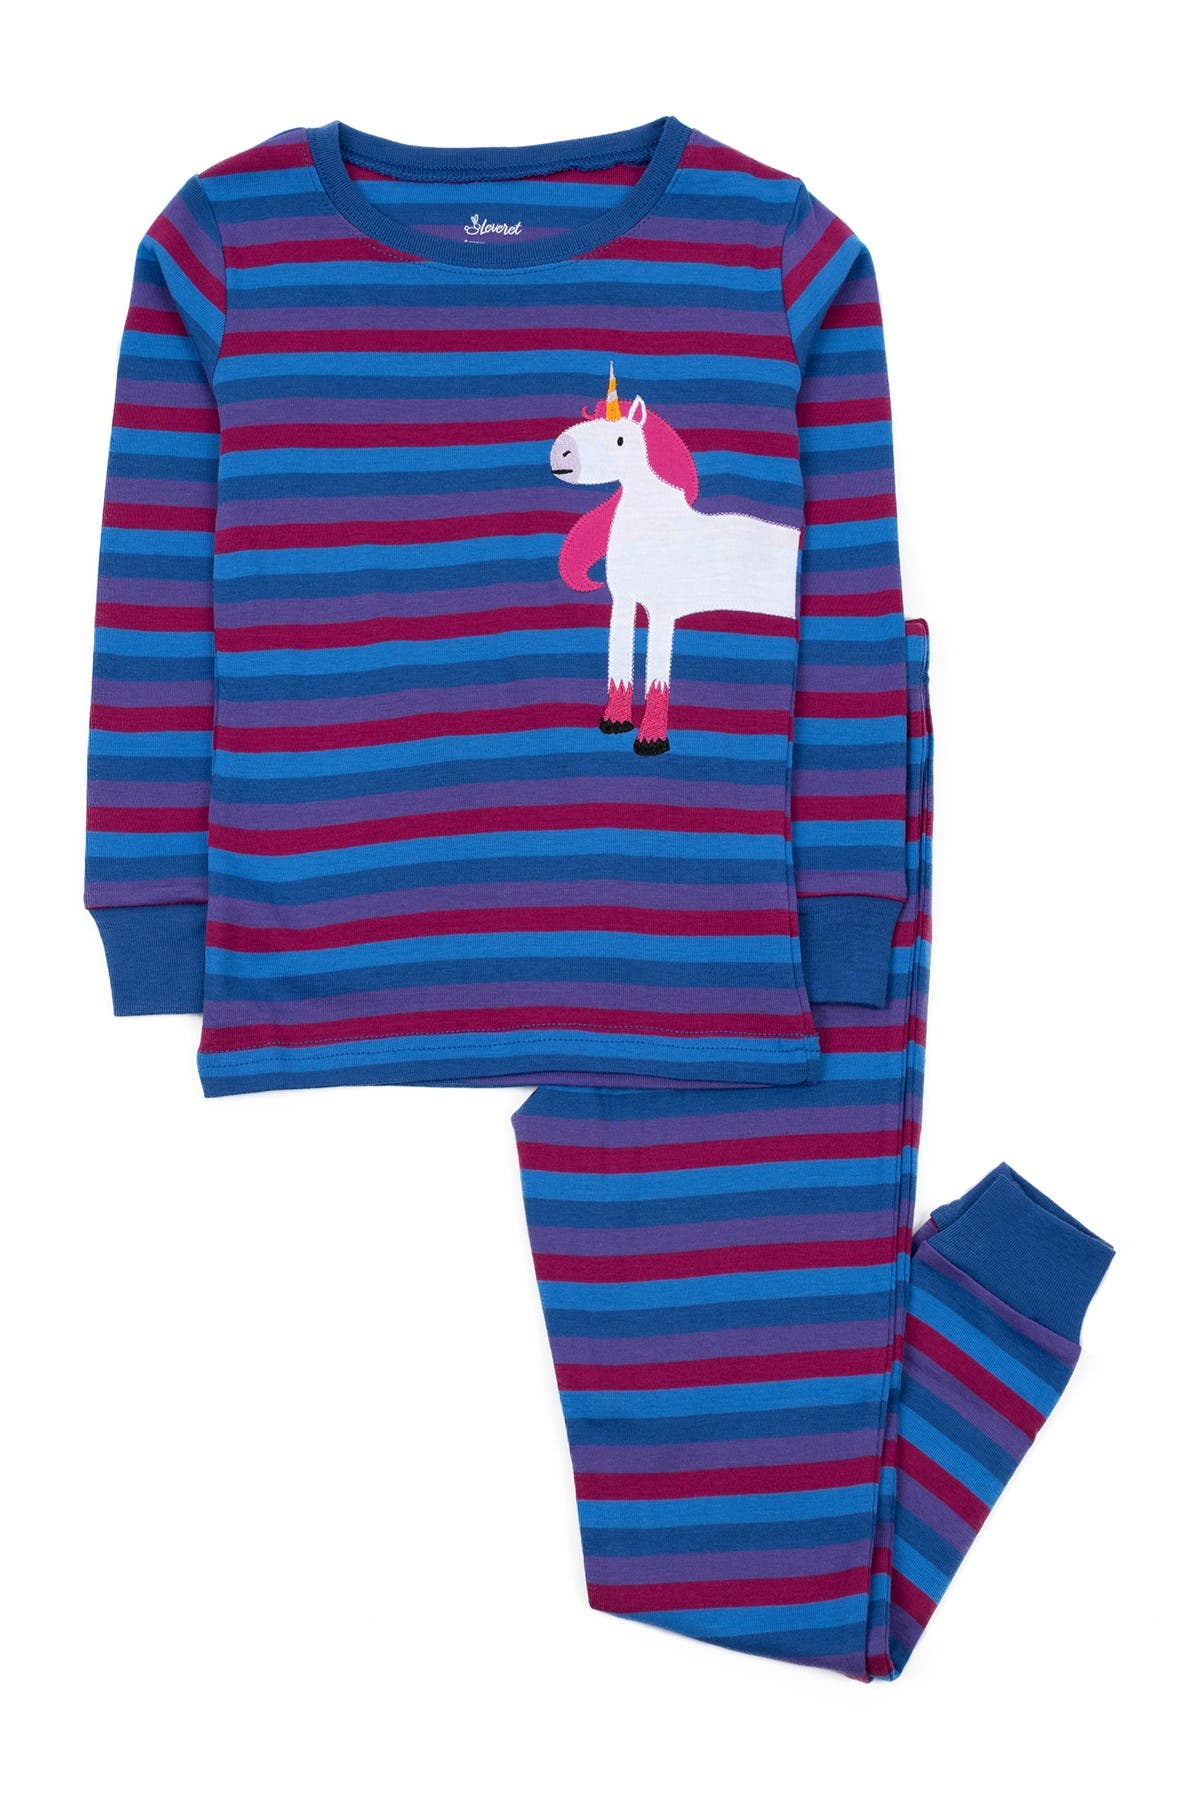 Image of Leveret Unicorn Stripes Cotton Pajamas